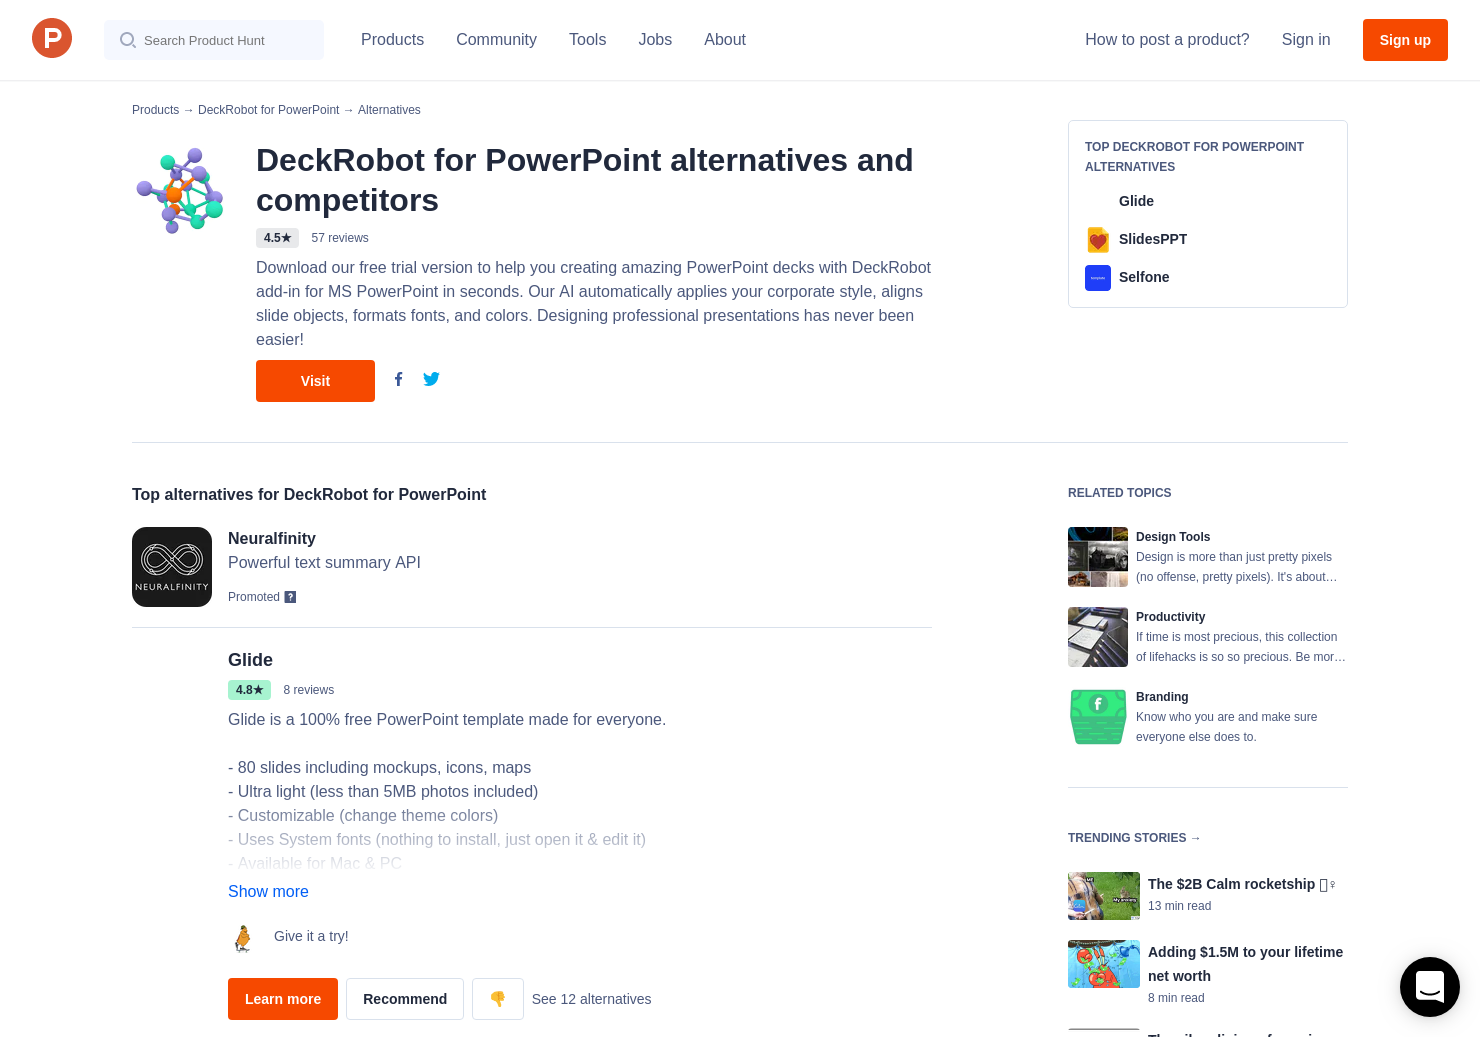 6 Alternatives to DeckRobot for PowerPoint | Product Hunt